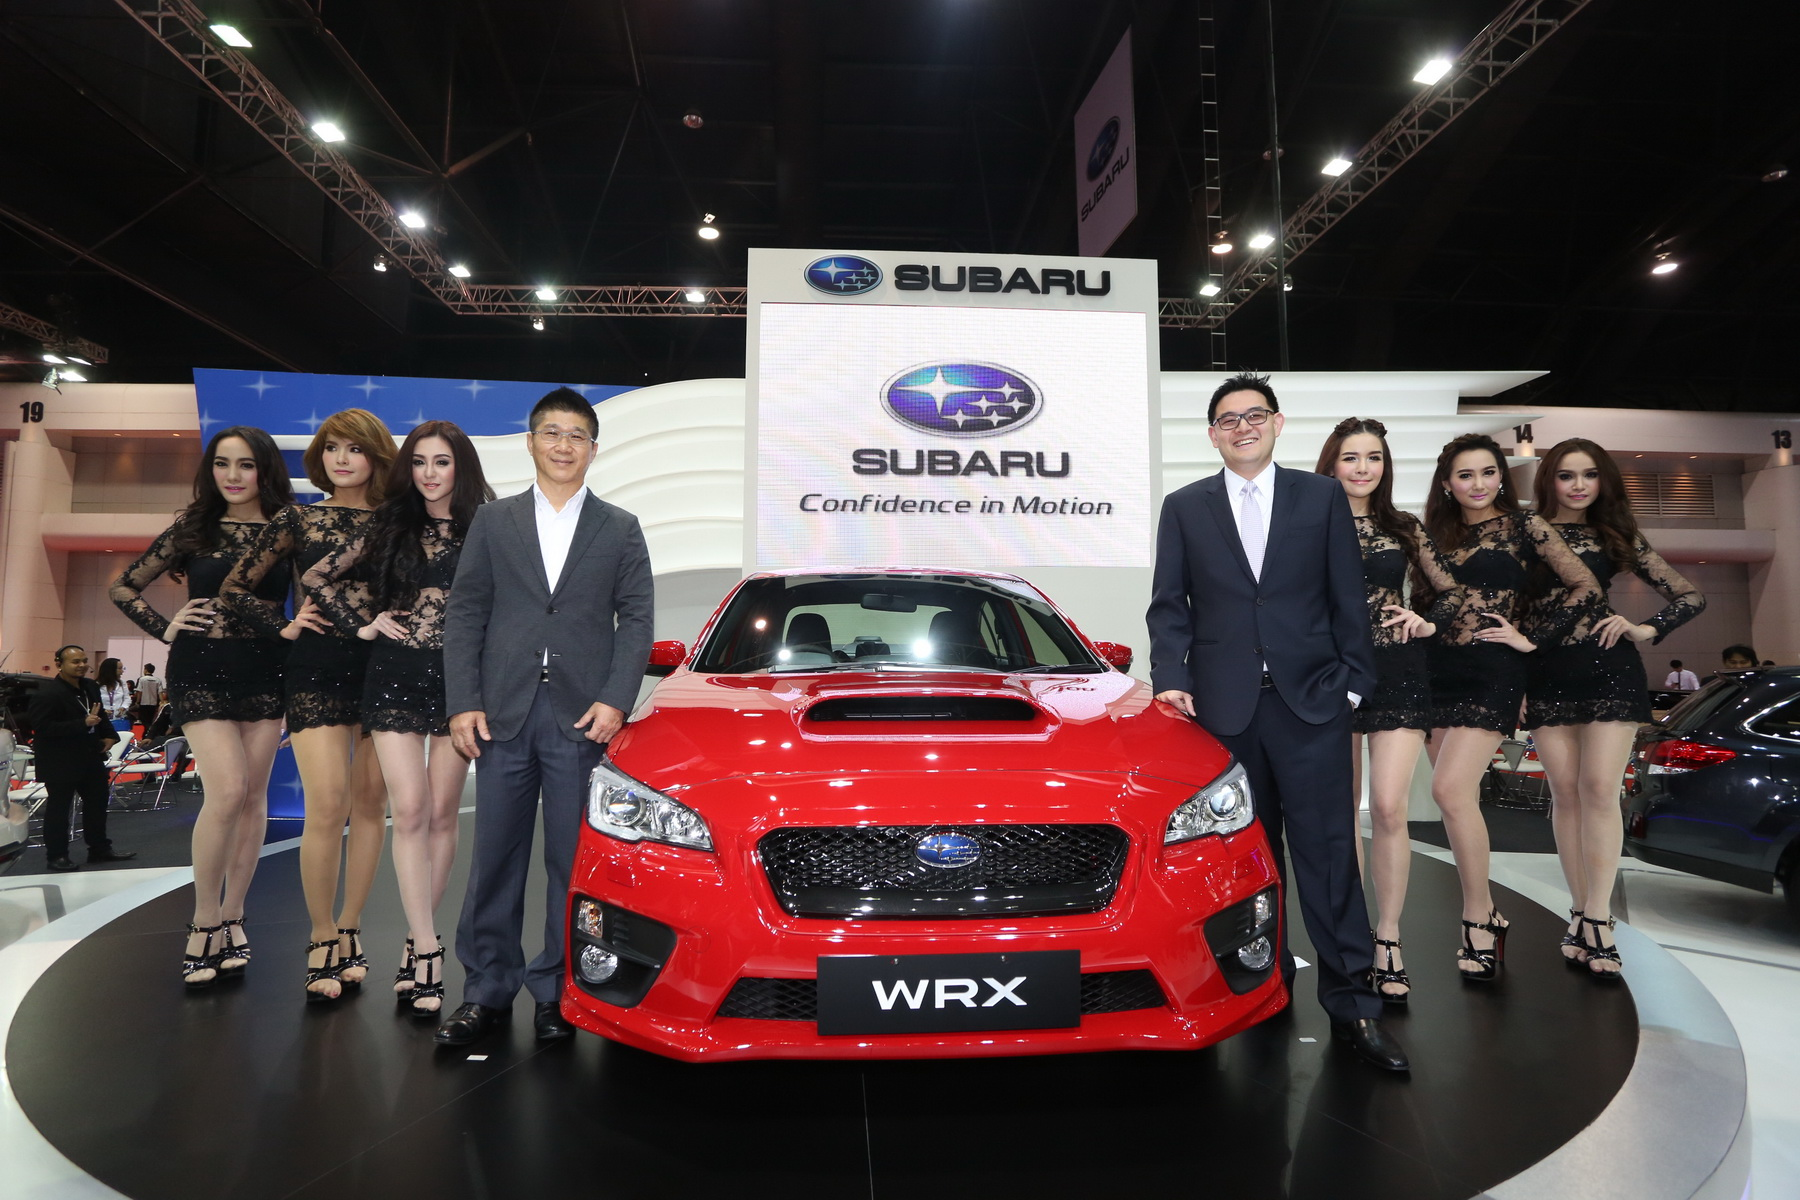 E B E B Be B B E B E B E B B E B A Wrx on Subaru Boxer Engine Technology